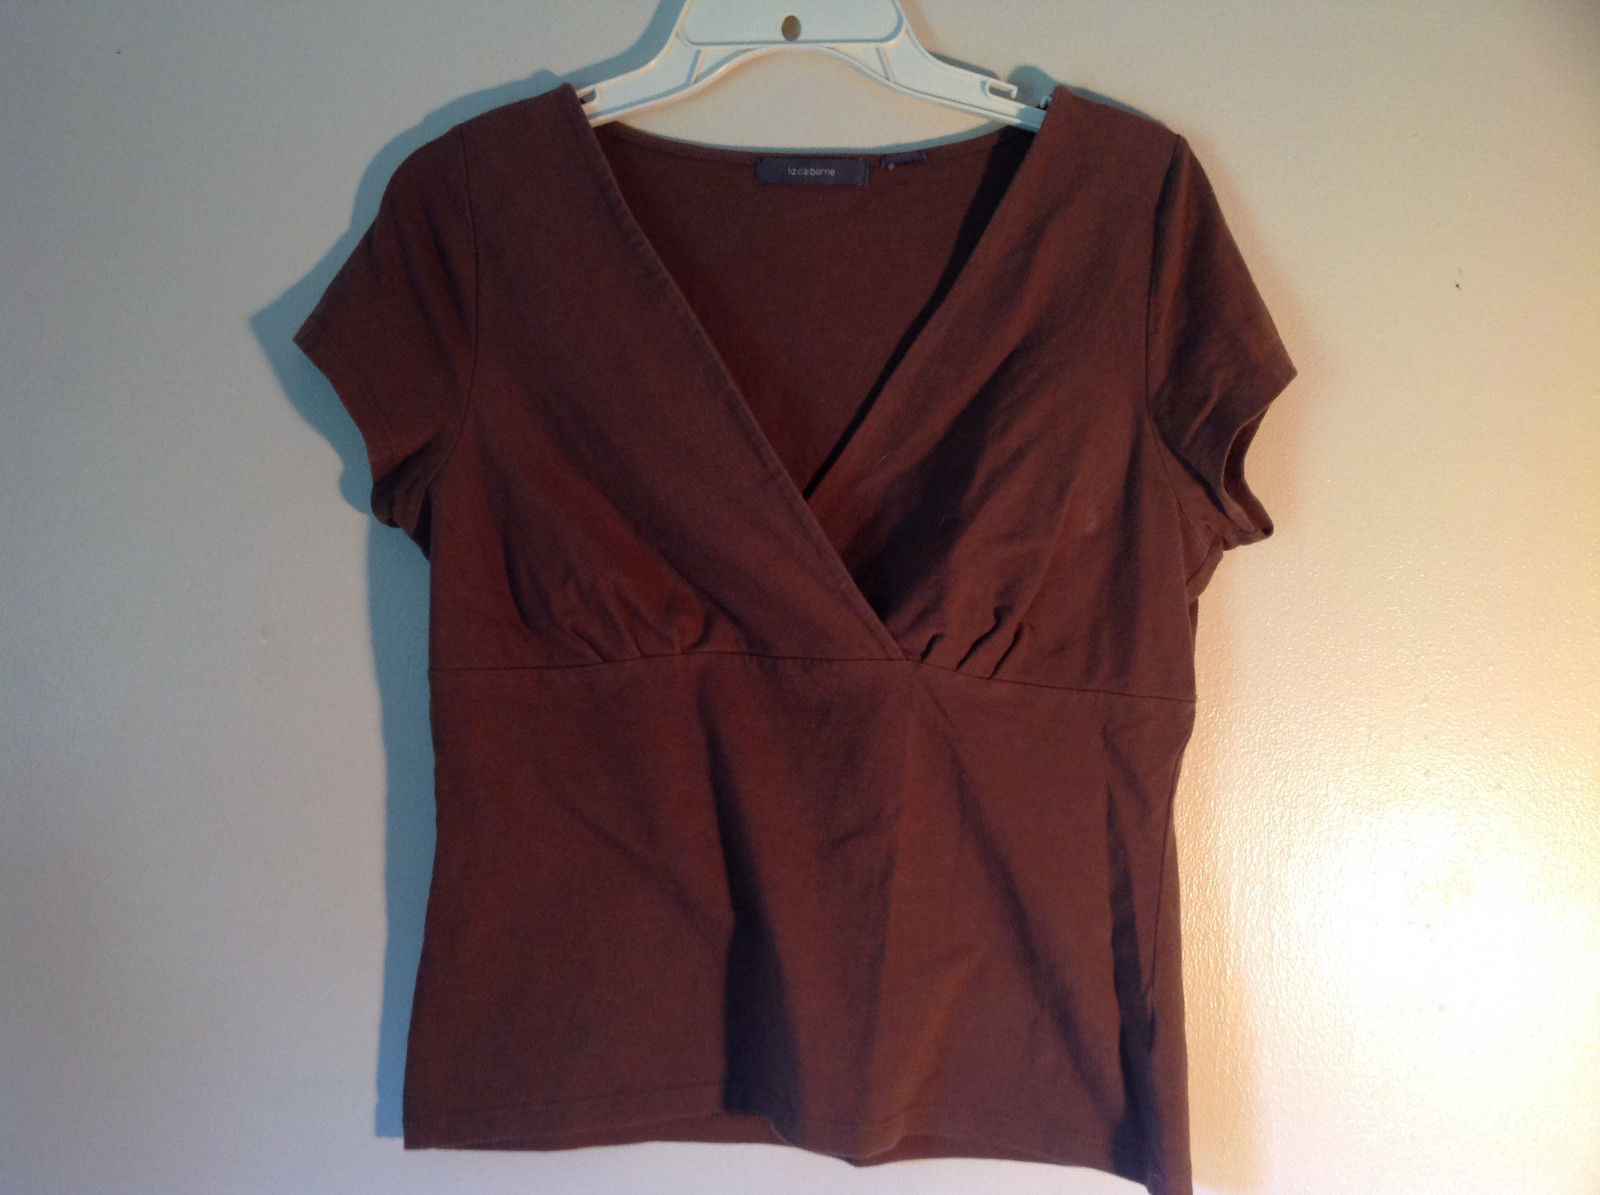 Cute Casual Brown Liz Claiborne Short Sleeve V Neck Top